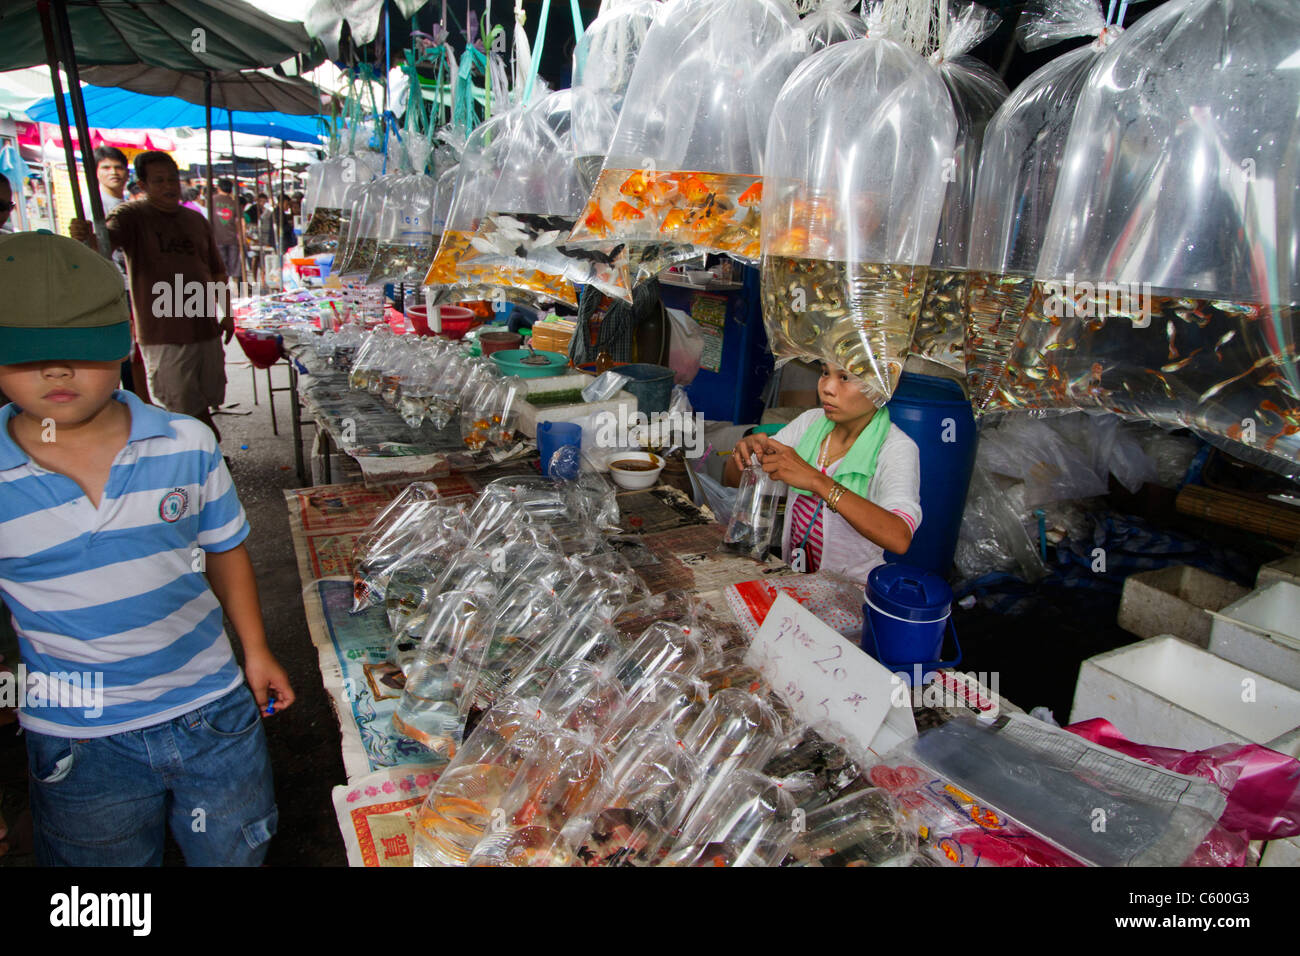 living fish in plastic bags at Chatuchak market stall in Bangkok, Thailand - Stock Image